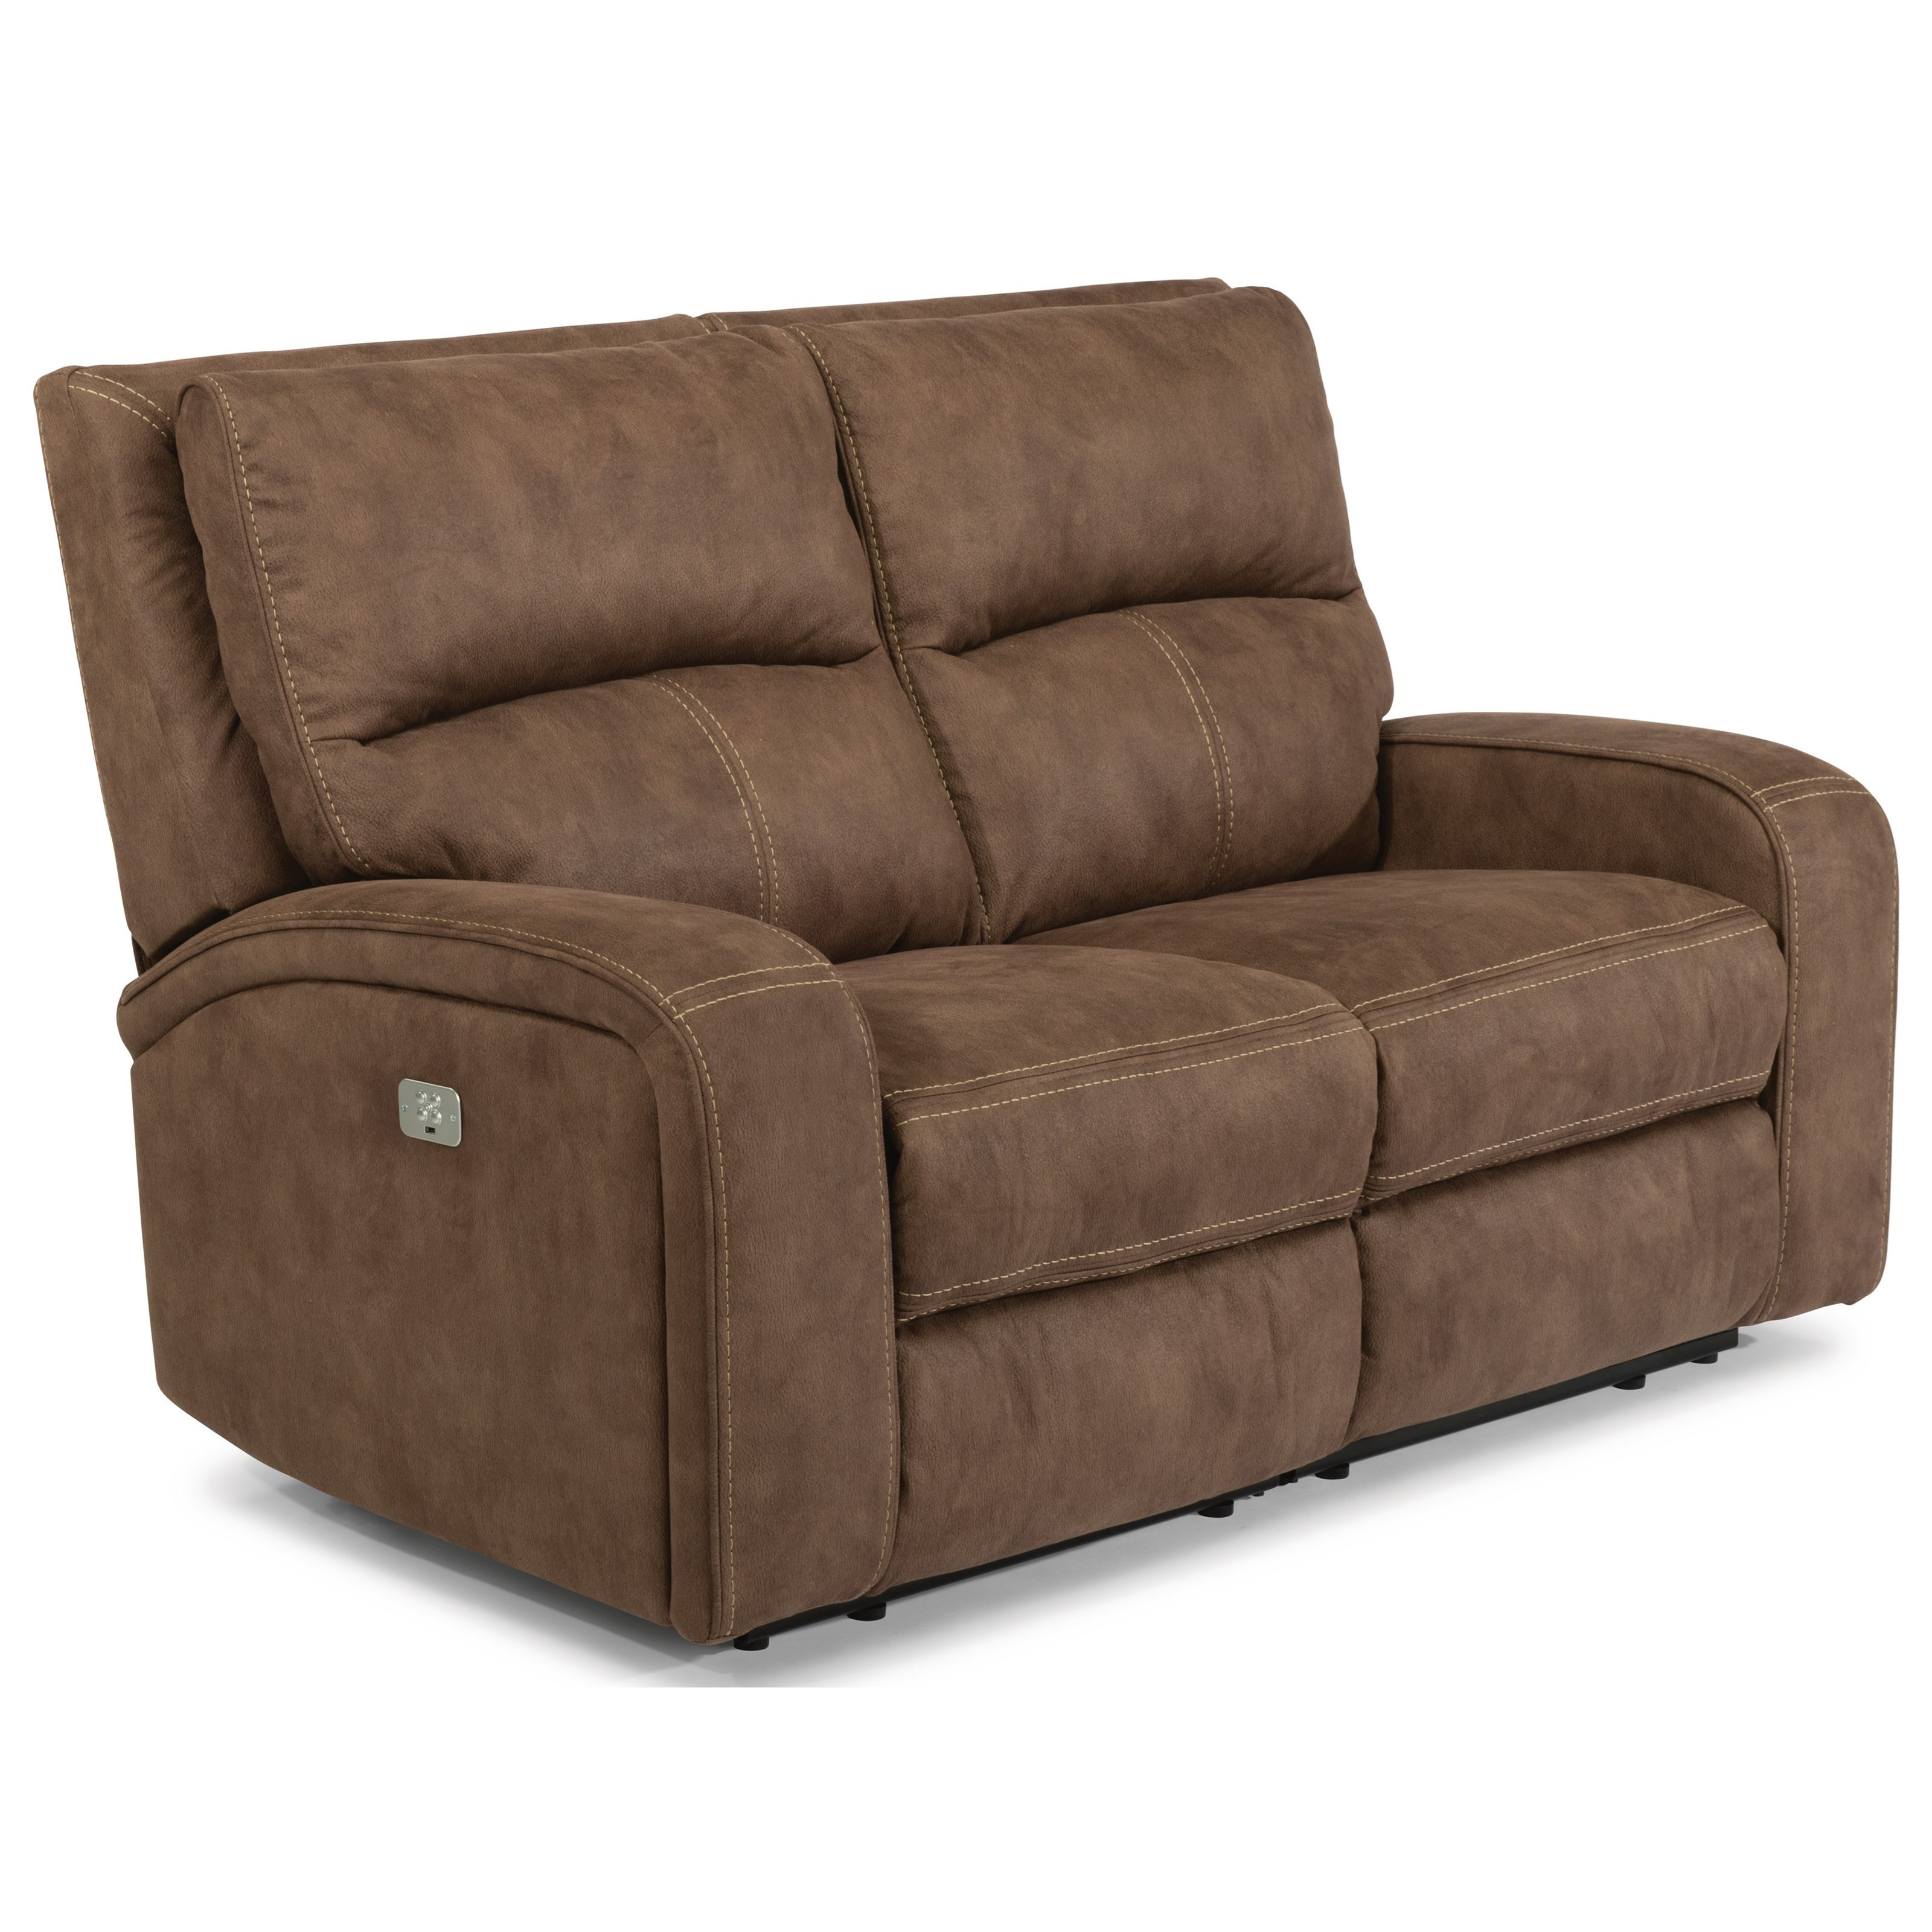 w z with trim addison la loveseat width full products transitional time console addisonla height boy cupholder reclining and item threshold